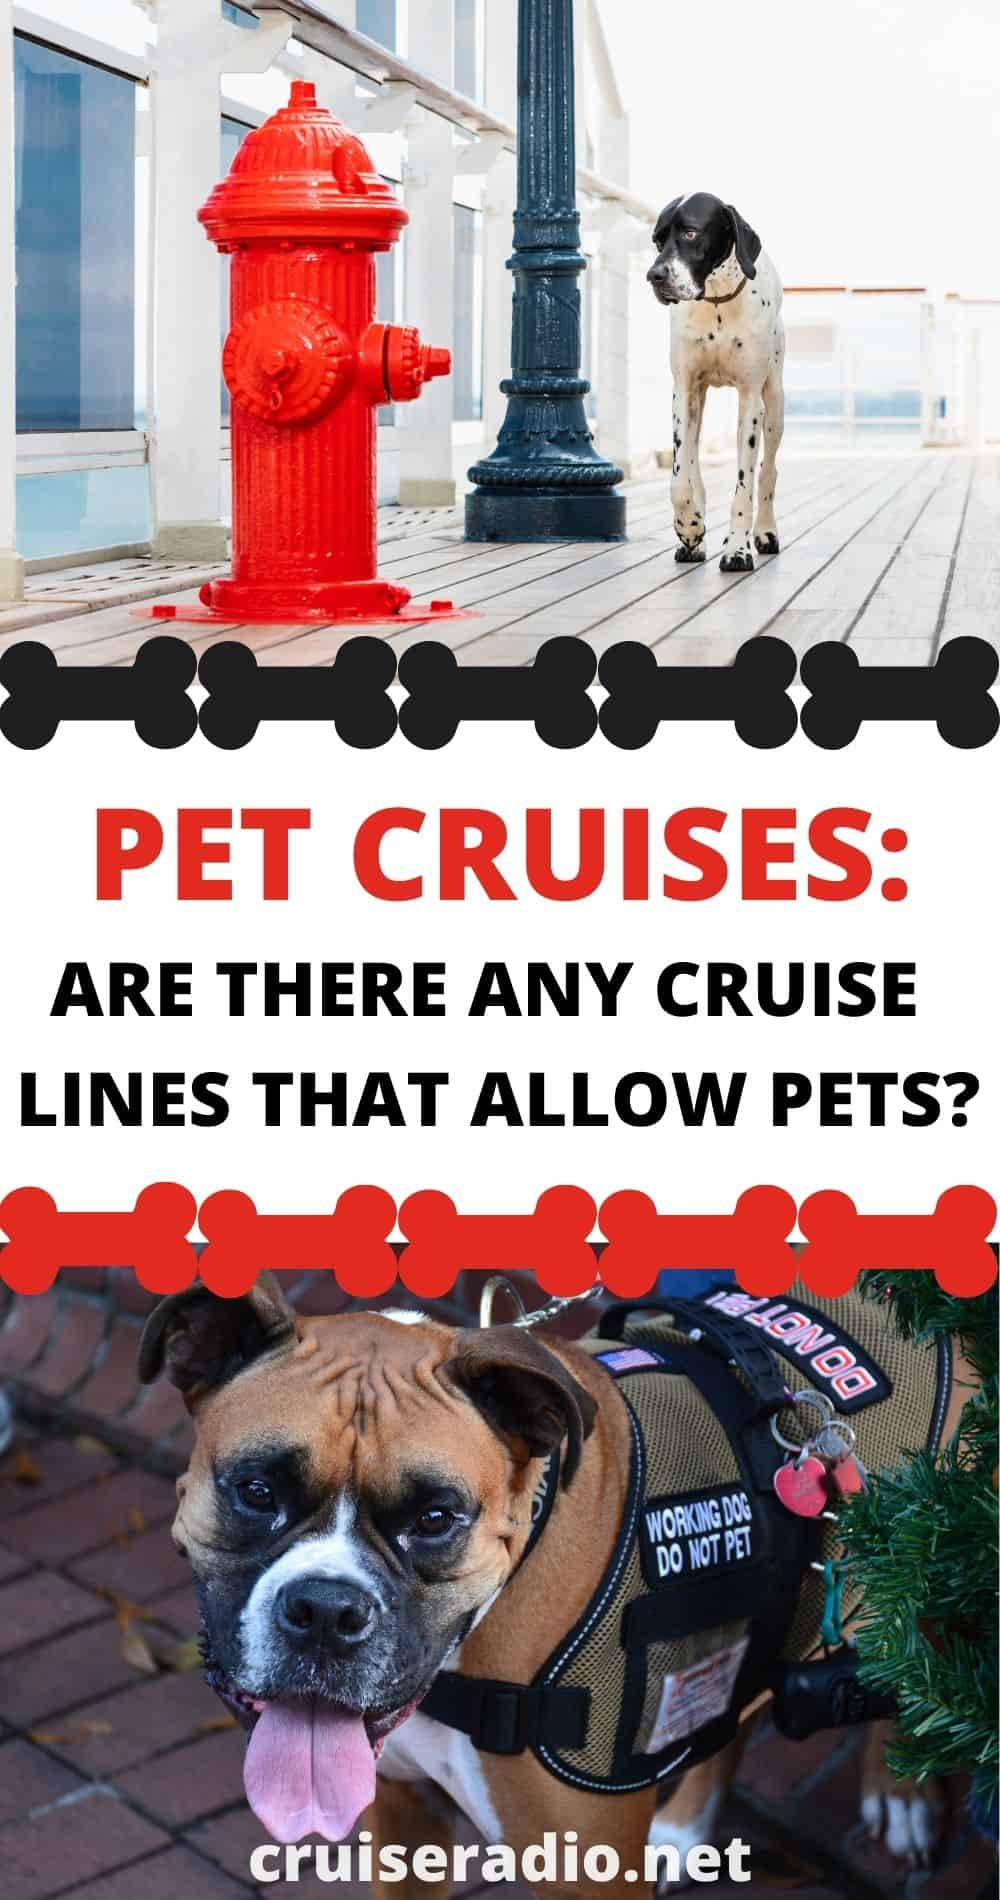 pet cruises lines that allow pets